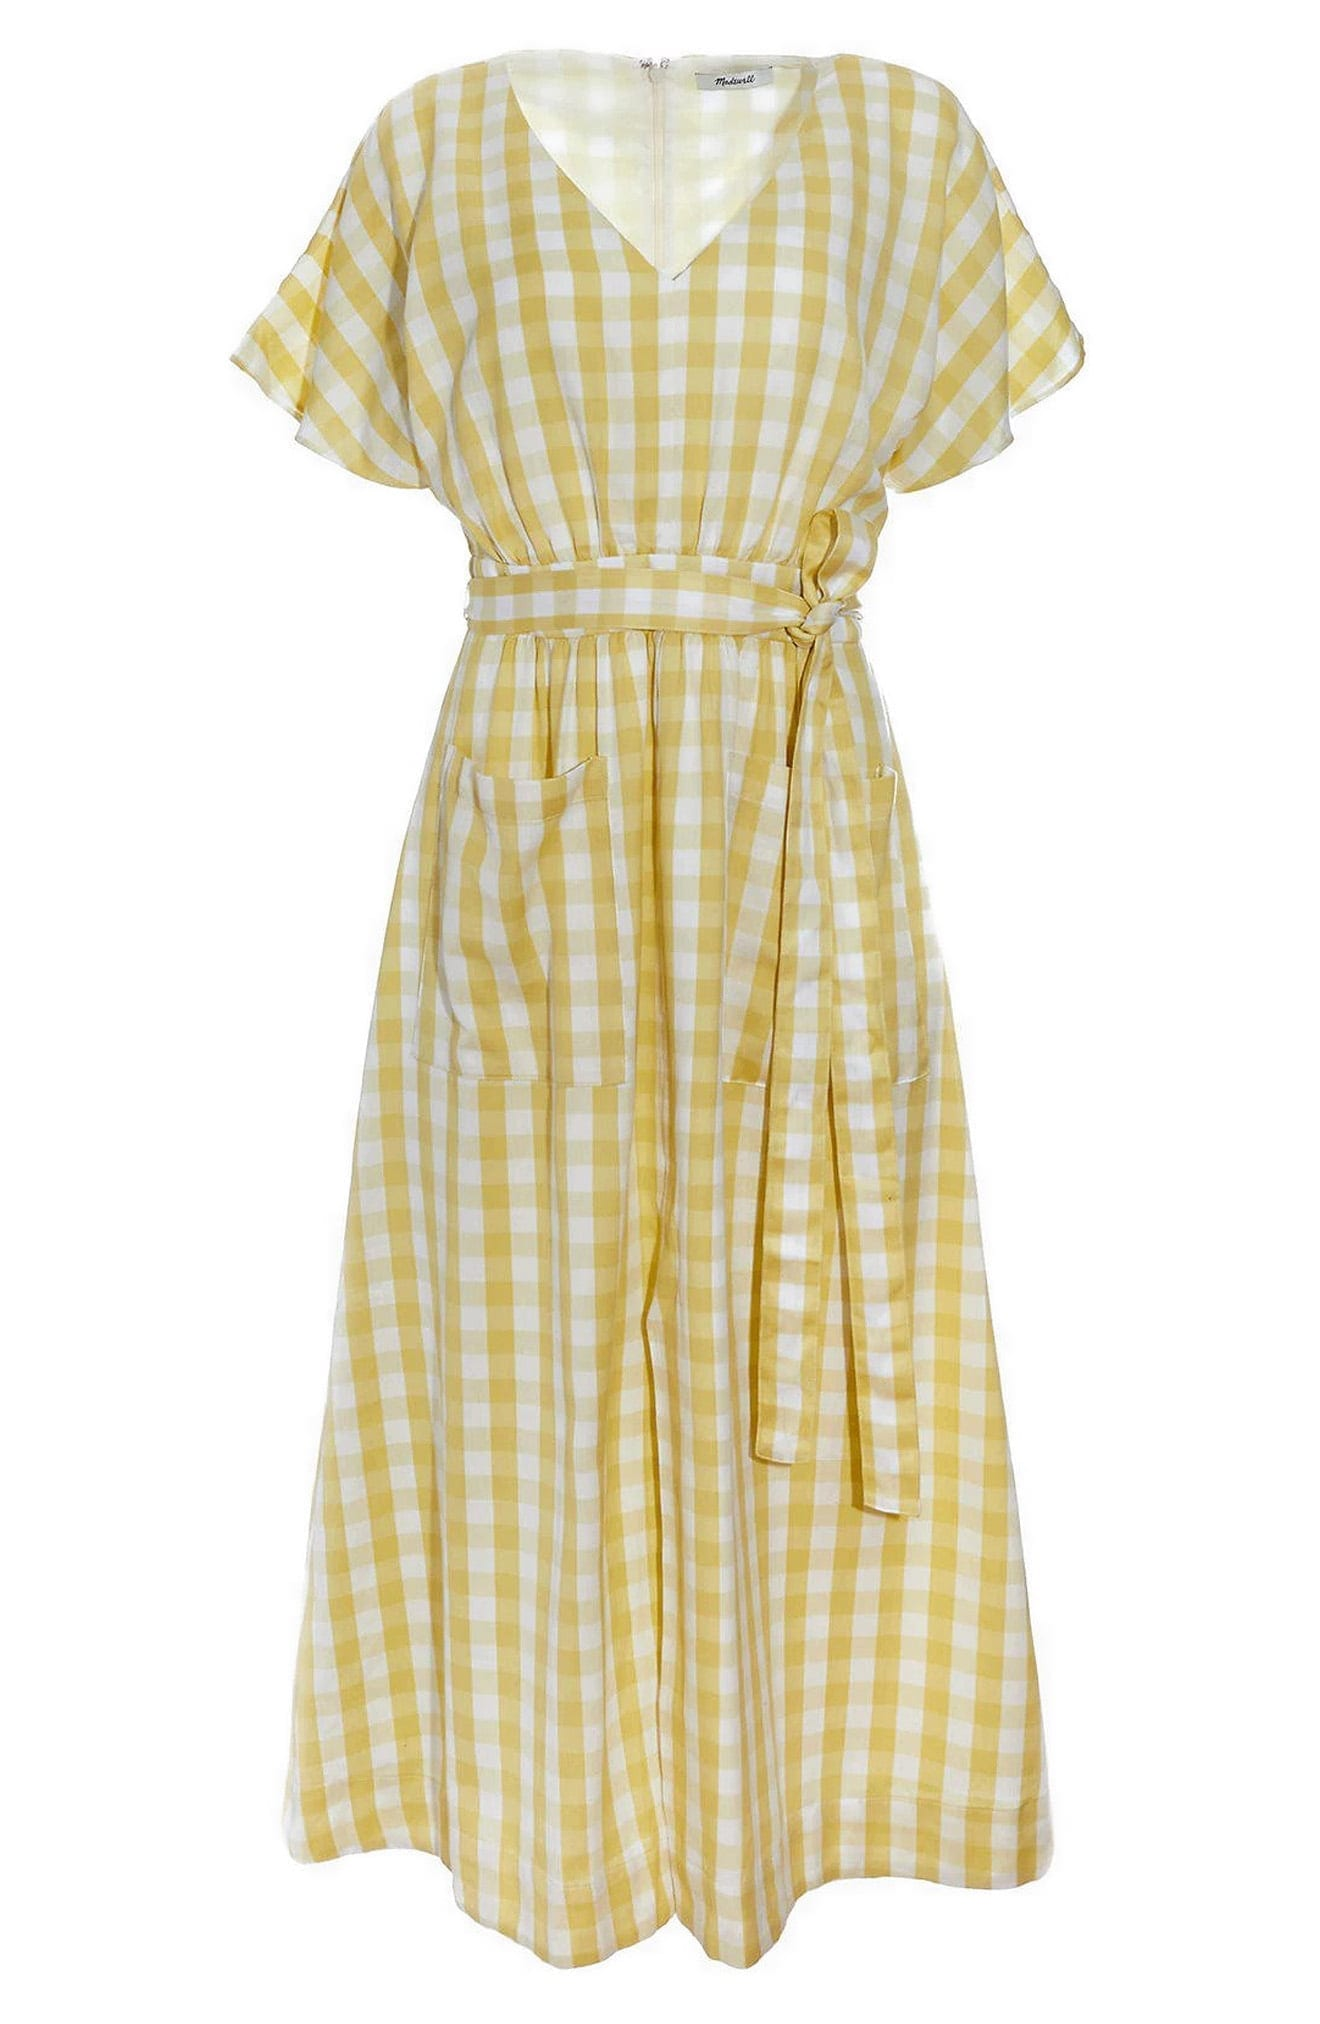 MADEWELL Gingham Check Dolman Sleeve Tie Waist Midi Dress